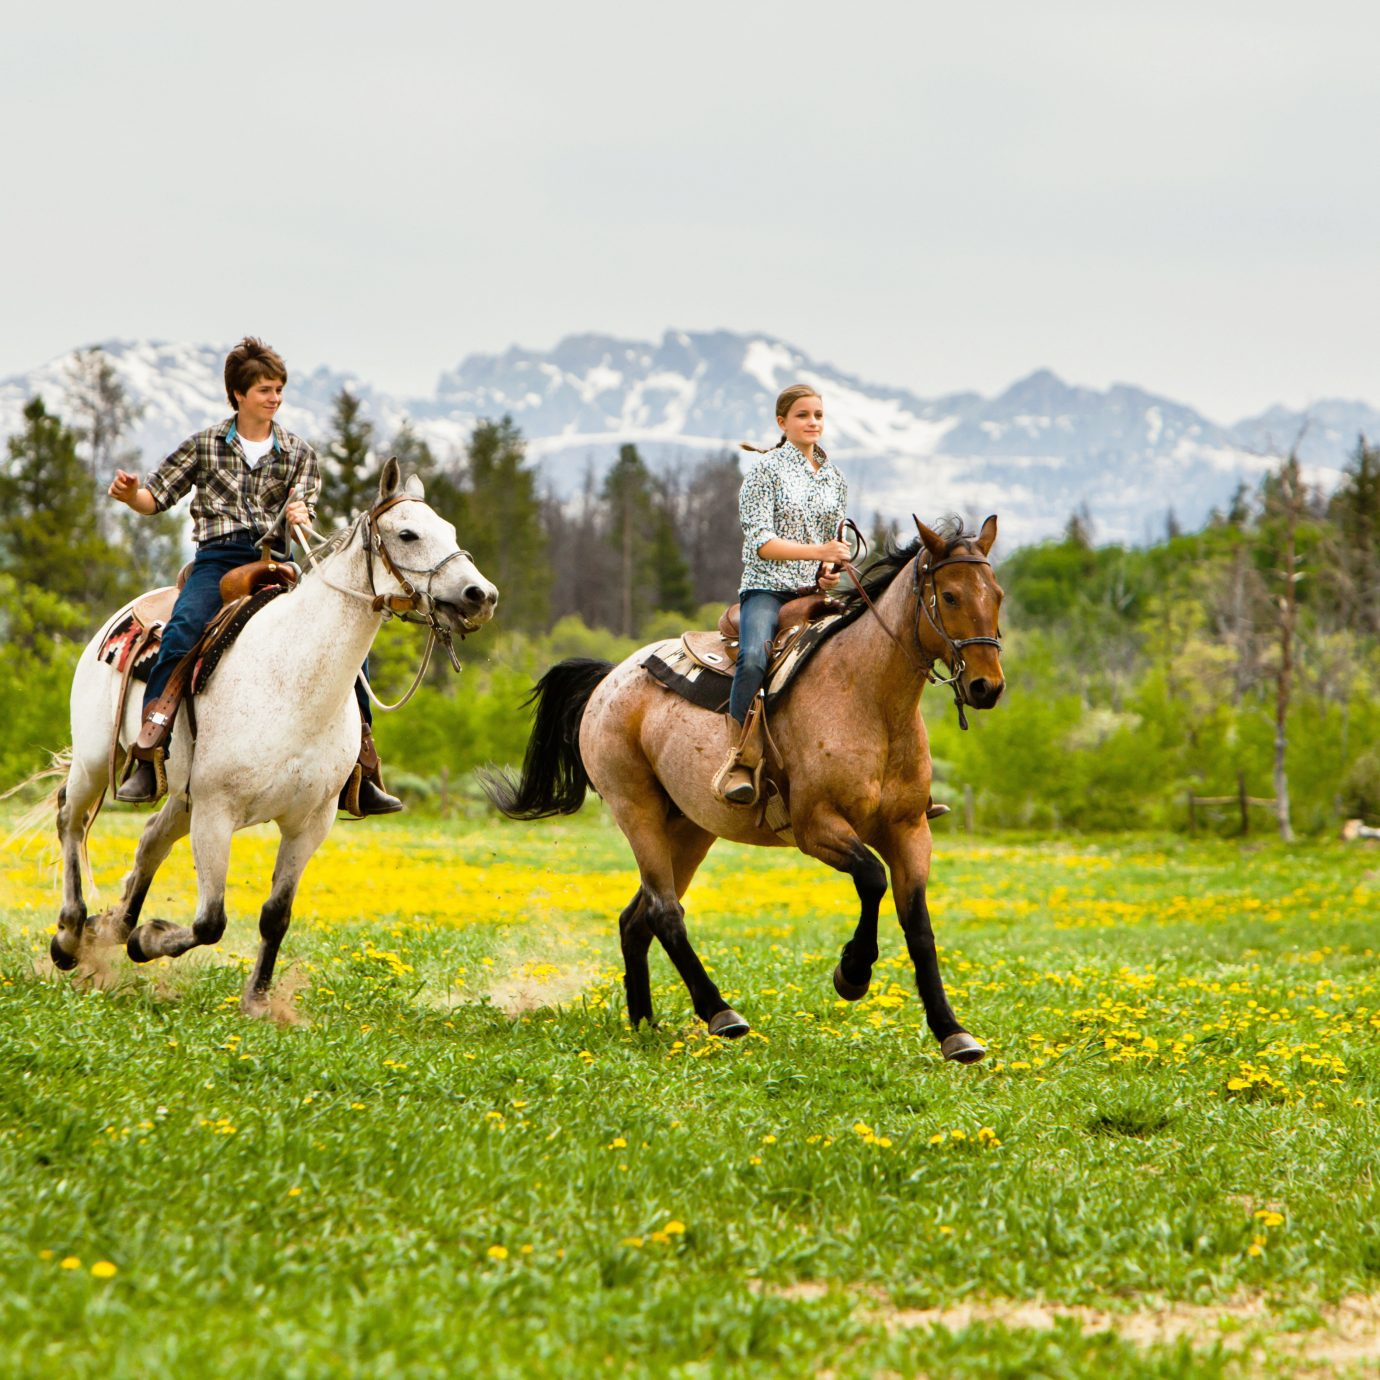 Country Mountains Outdoor Activities Ranch Rustic grass sky field endurance riding horse pasture trail riding equestrianism grassland mare eventing mustang horse equestrian sport animal sports horse like mammal english riding grazing meadow mammal sports stallion herd grassy